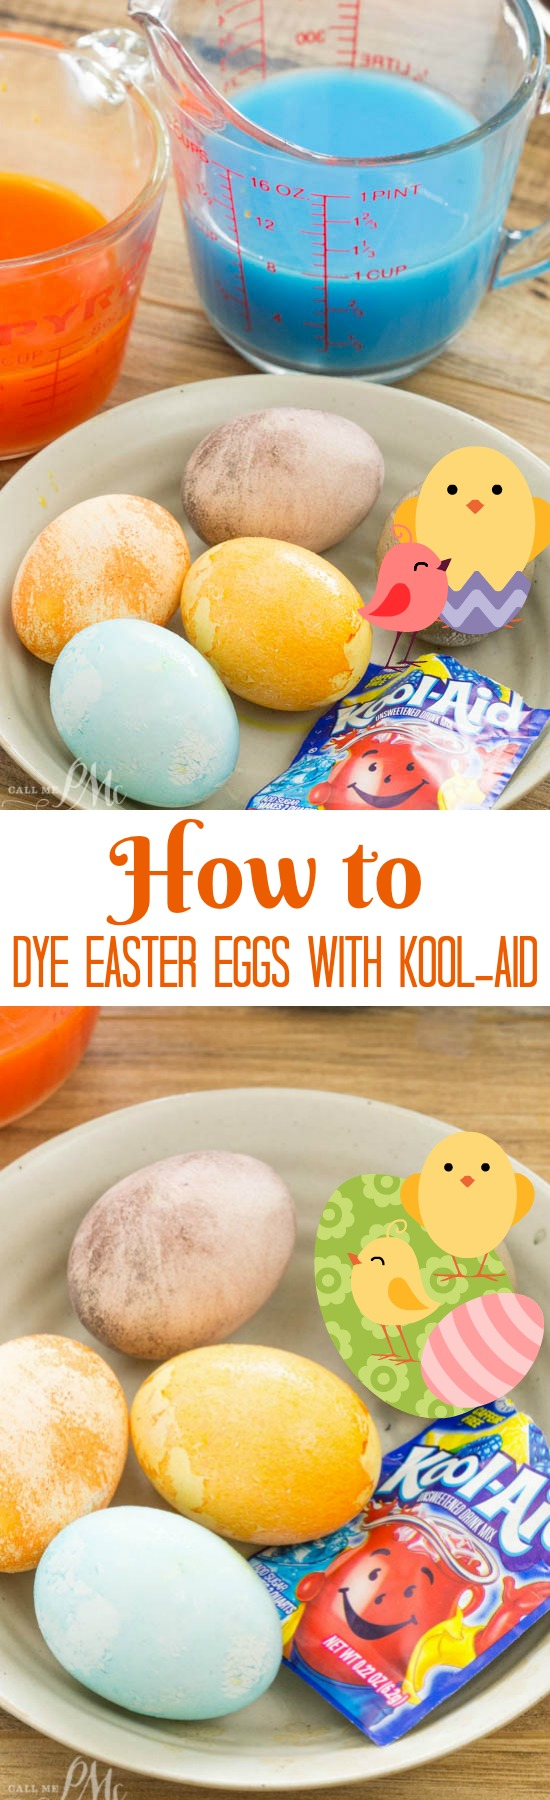 How to Dye Easter eggs with Kook-Aid craft. DIY.